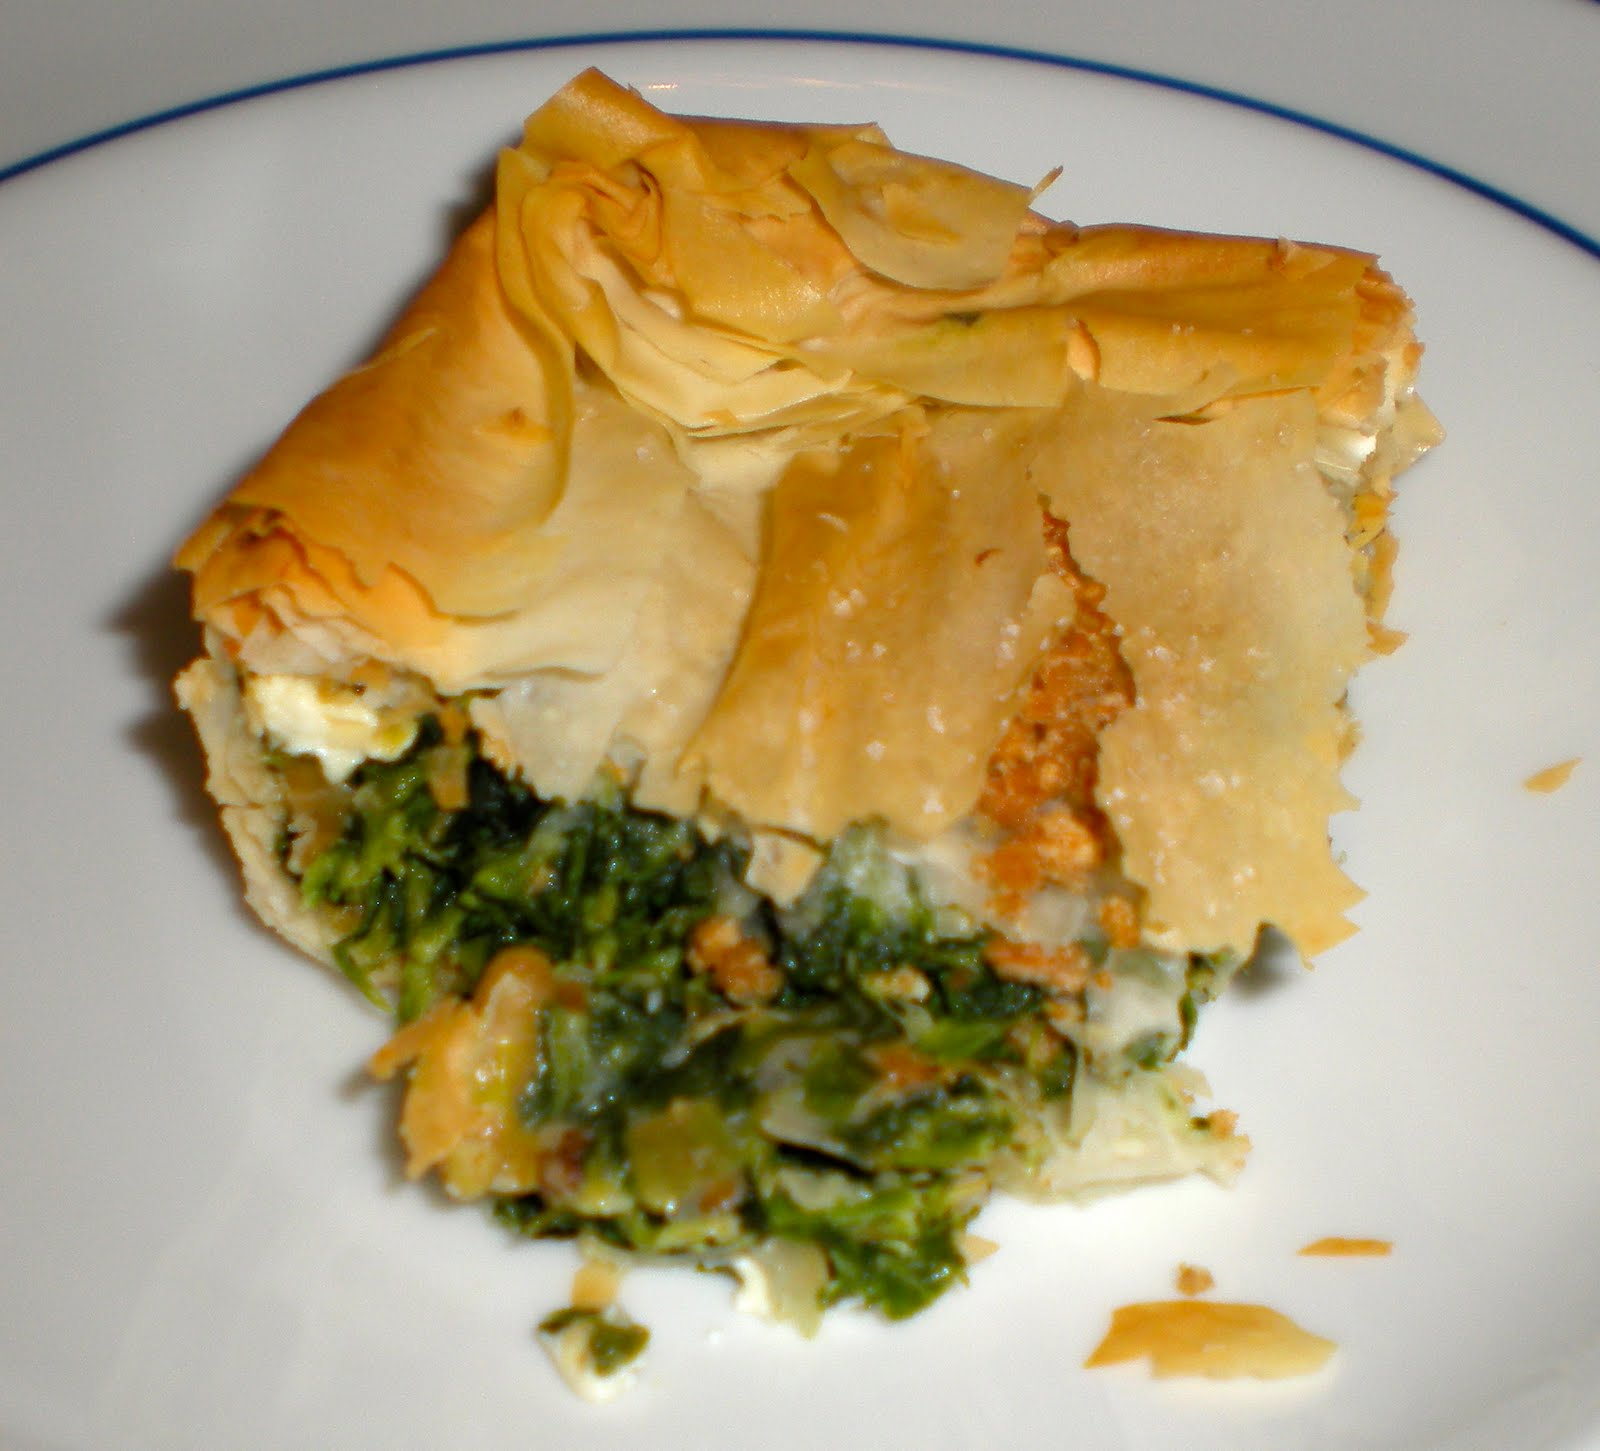 edible ventures: Spanakopita